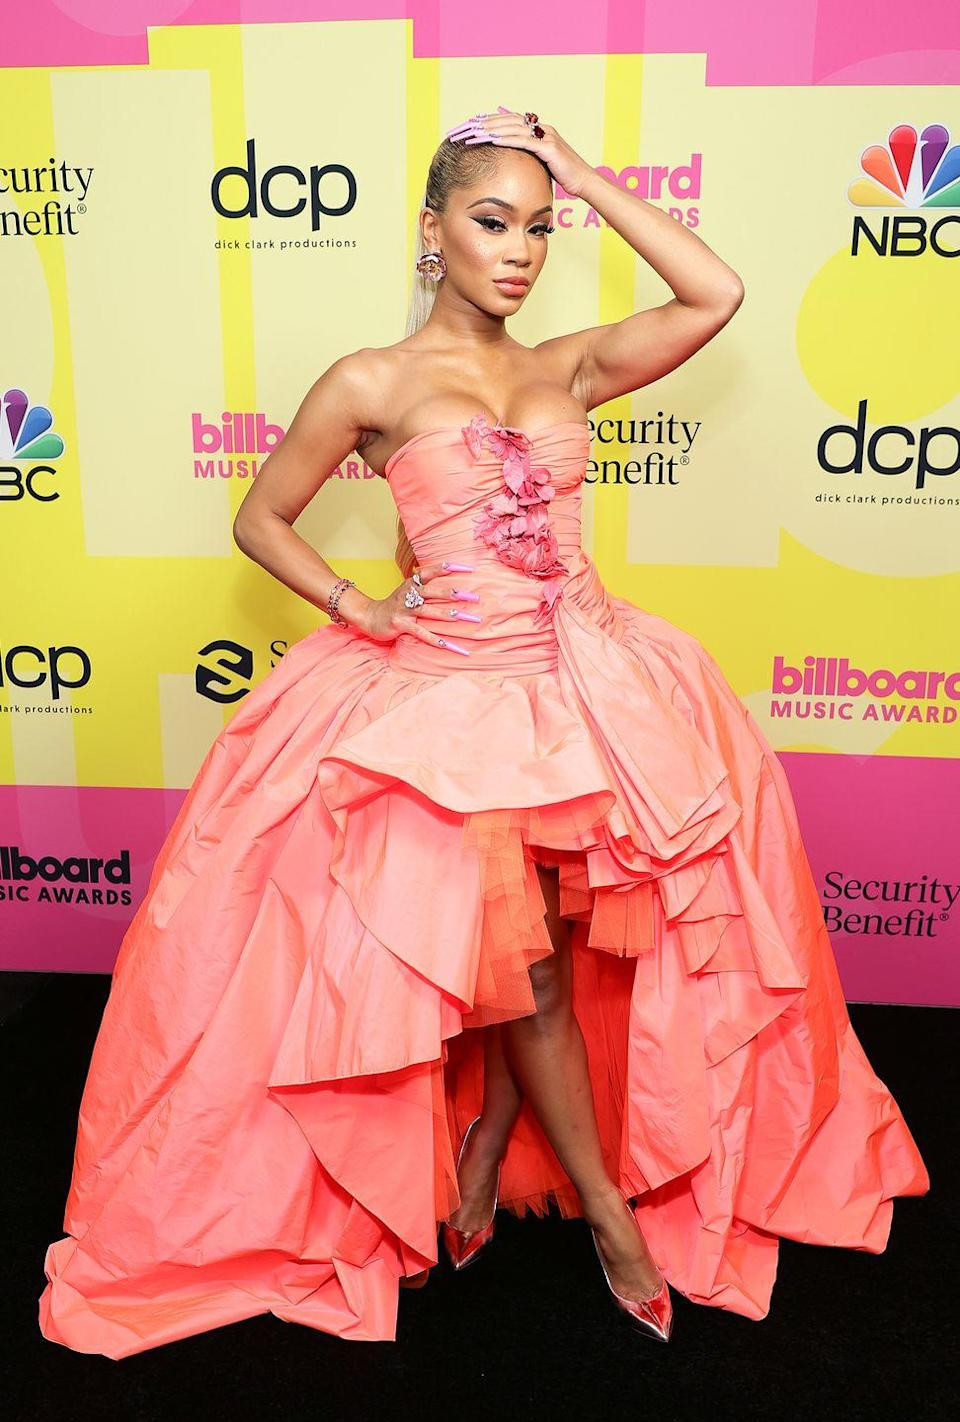 <p><strong>What: </strong>Giambattista Valli<br><br><strong>Why:</strong> The rapper had a full on princess moment on the red carpet in a peach-colored strapless dress from Giambattista Valli. Detailed with ruffles, tulle, and an asymmetric hemline, the star's full gown channeled Marie Antoinette in a major way. She wore her long ponytail slicked back and rocked a pair of point-toe iridescent pumps. </p>